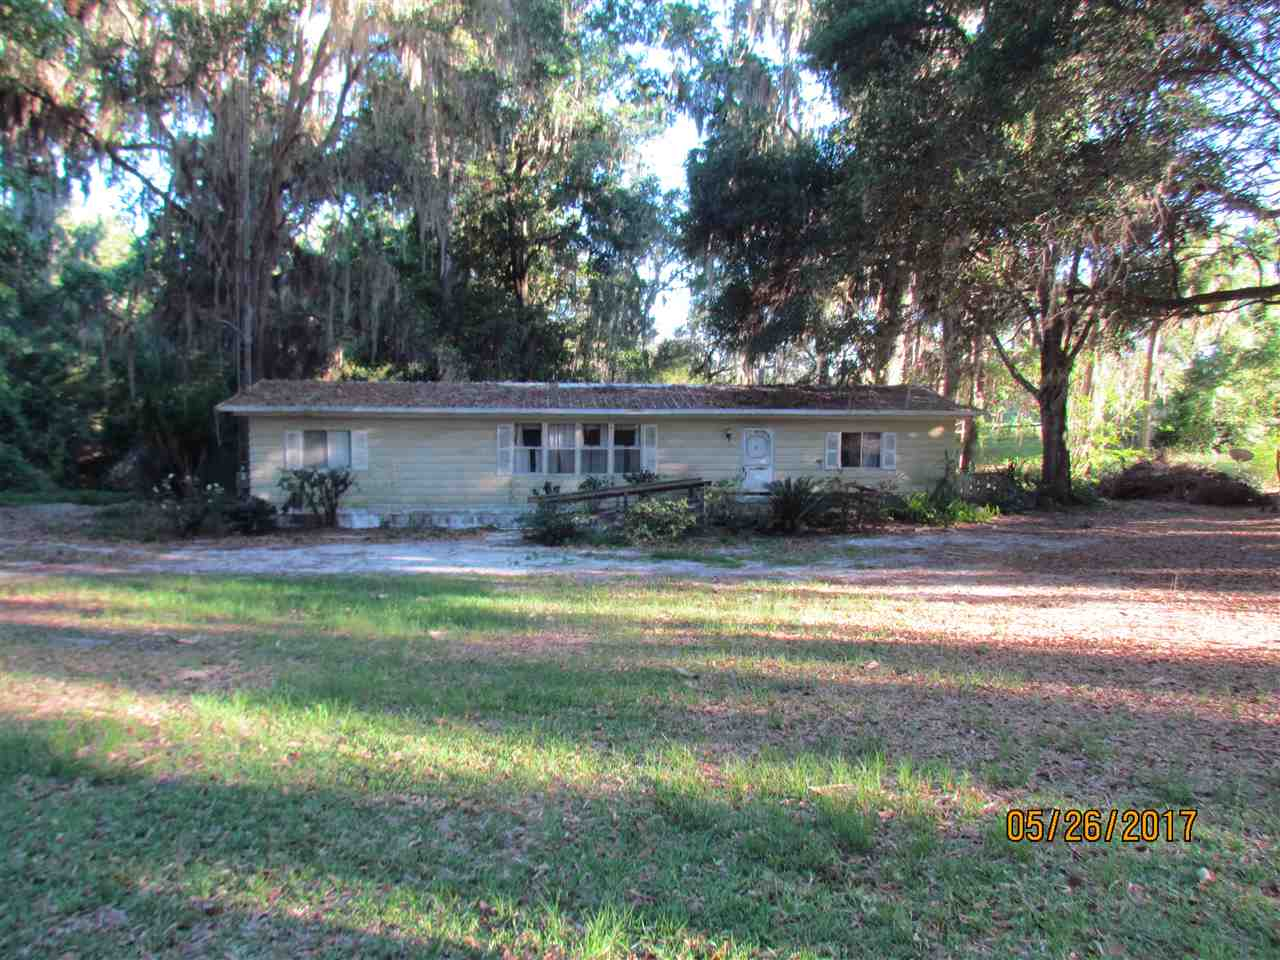 Photo of 807080808090 NW highway 320  Micanopy  FL